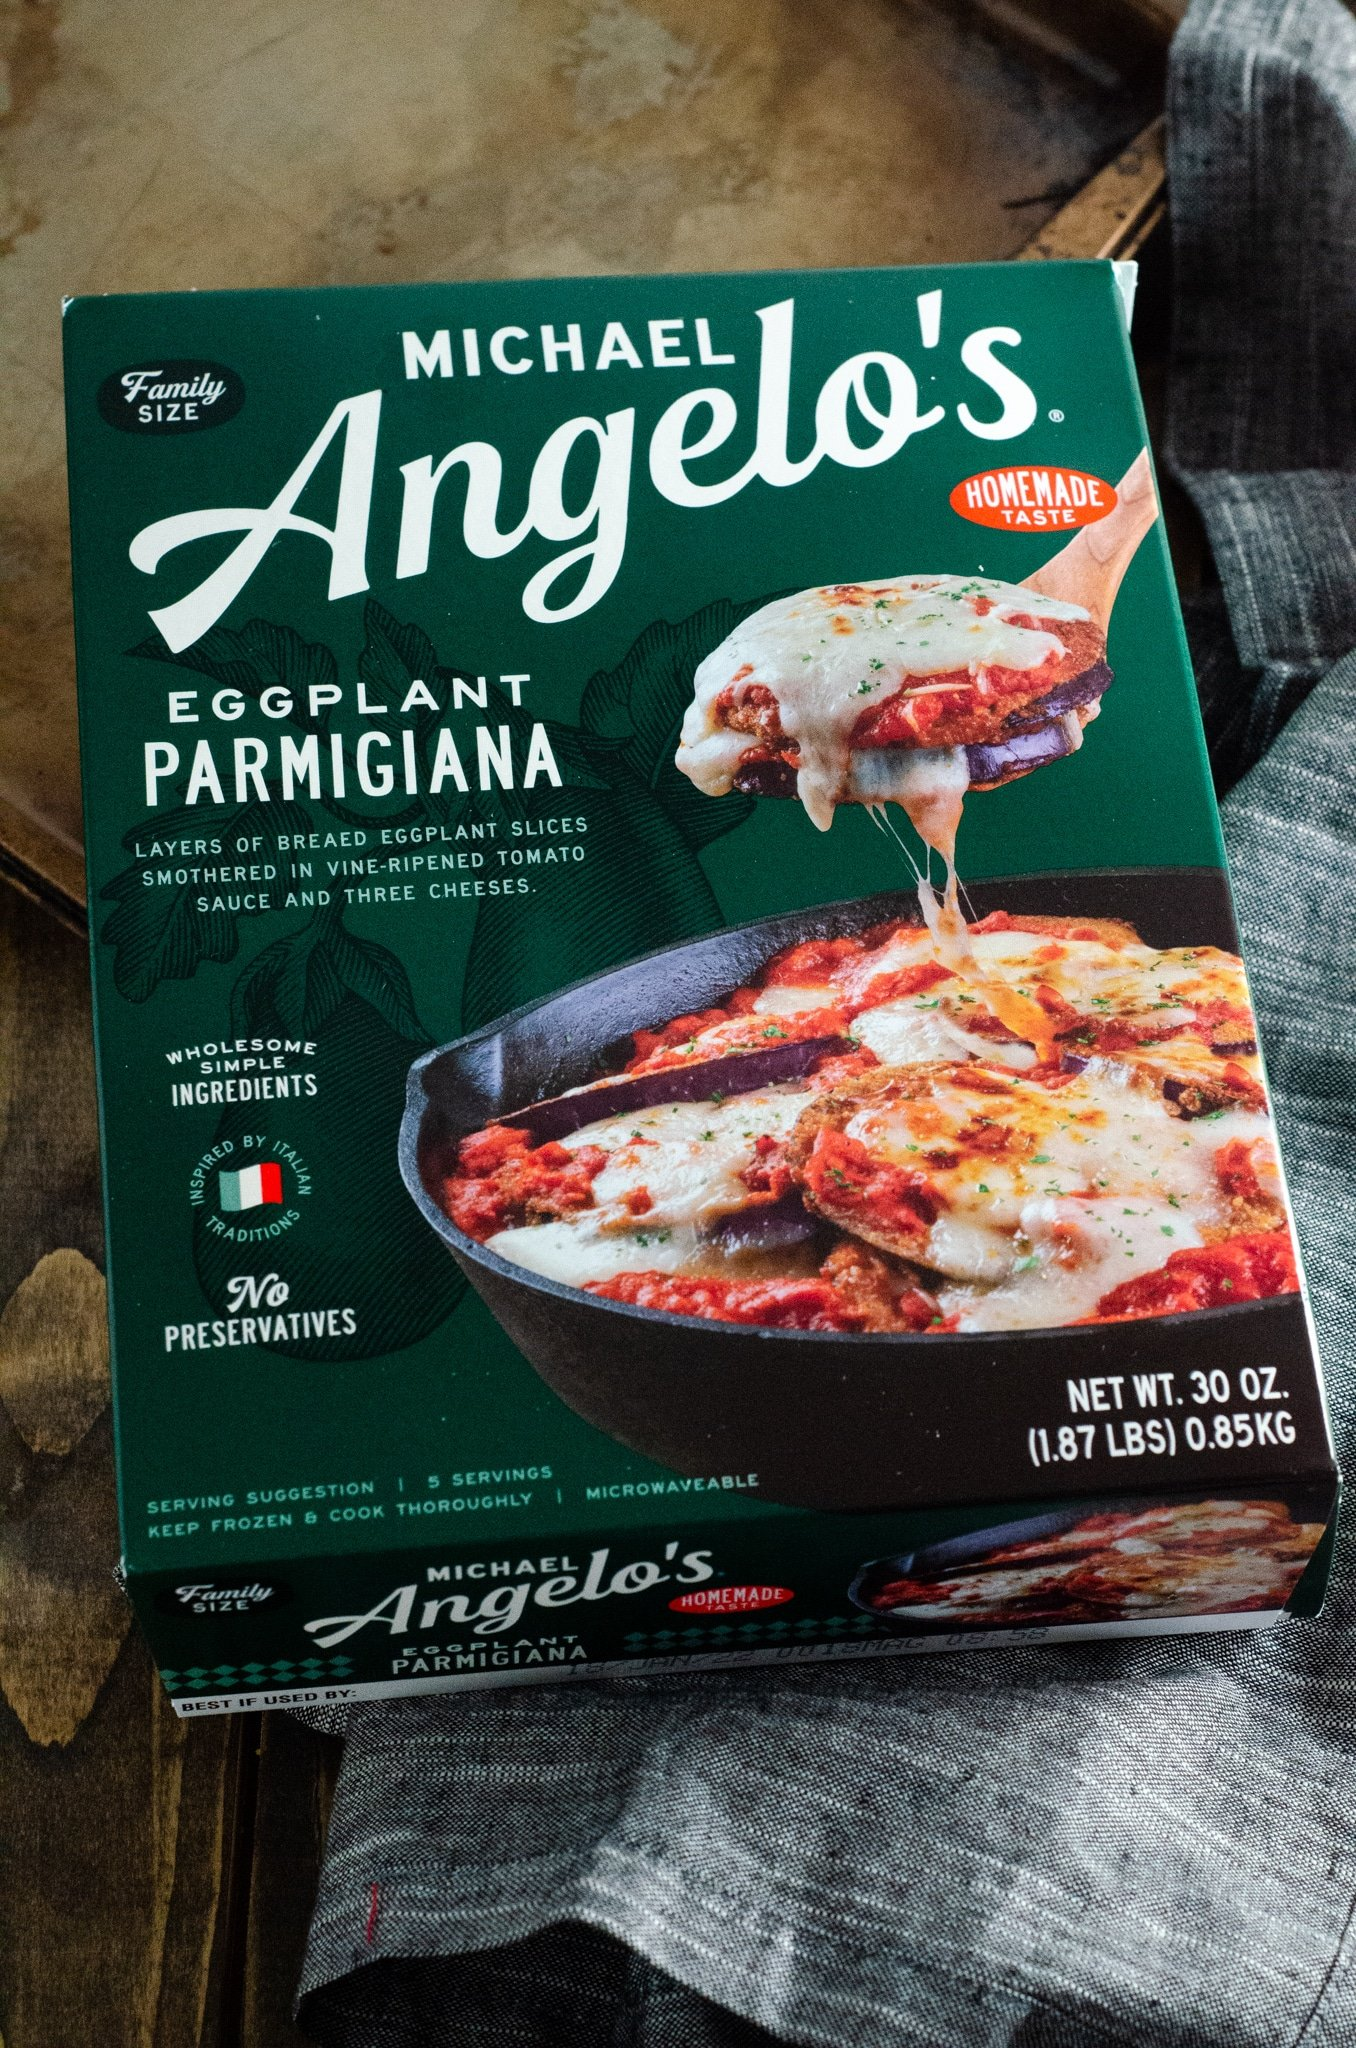 Michael Angelos Eggplant Lasanga Frozen Entree. March is National Frozen Food Month and what better way to celebrate it by shopping for your favorite frozen food brands at your local Harris Teeter. Michael Angelos Eggplant Lasanga is one of the many frozen foods you can grab this month and earn fuel points at Harris teeter.